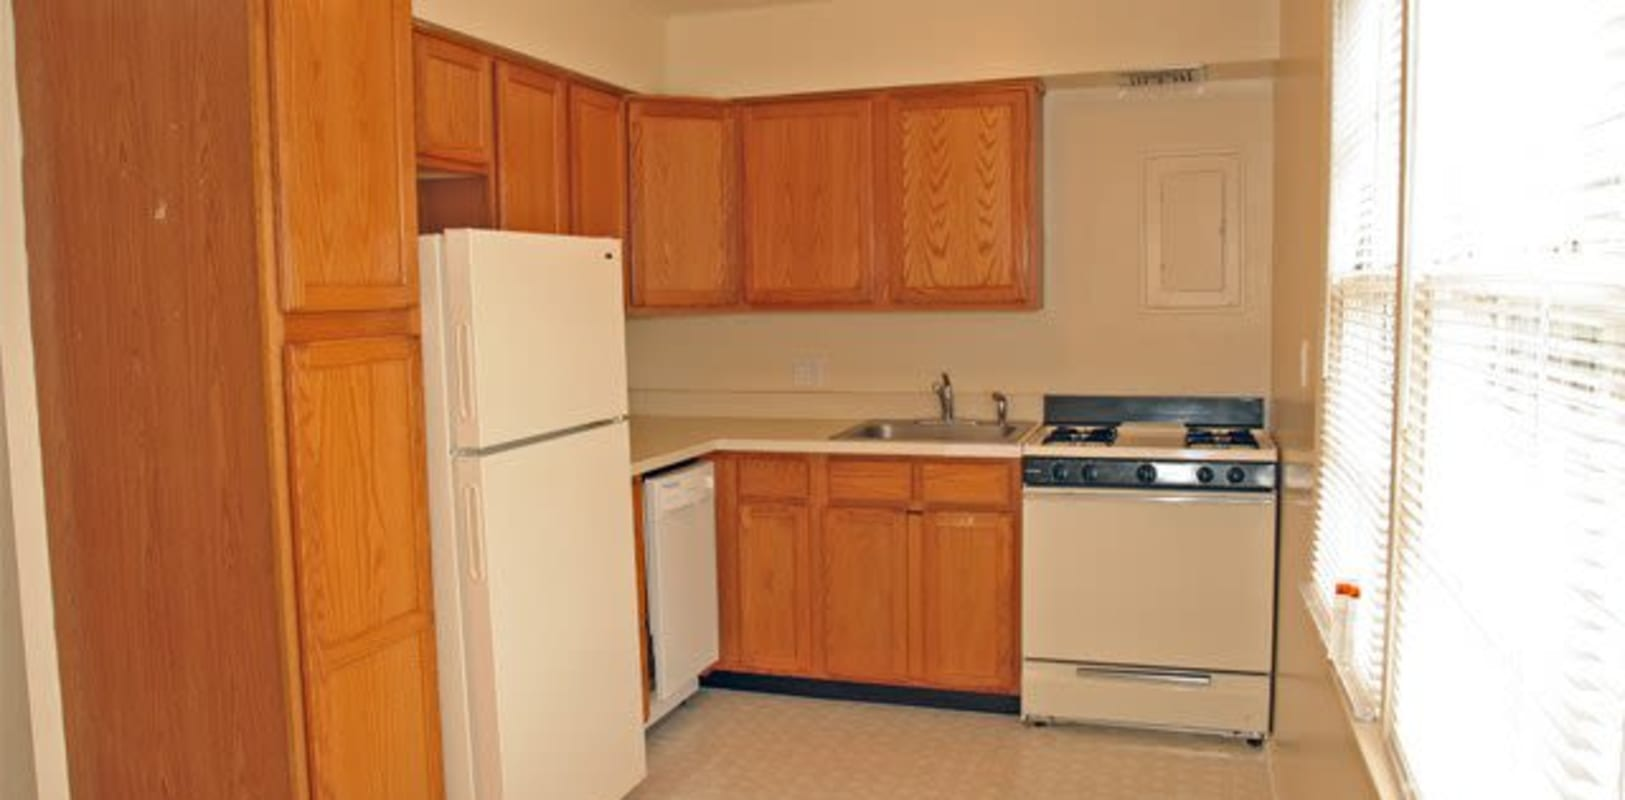 Fully equipped kitchen at Hunterdon Mews in Flemington, New Jersey